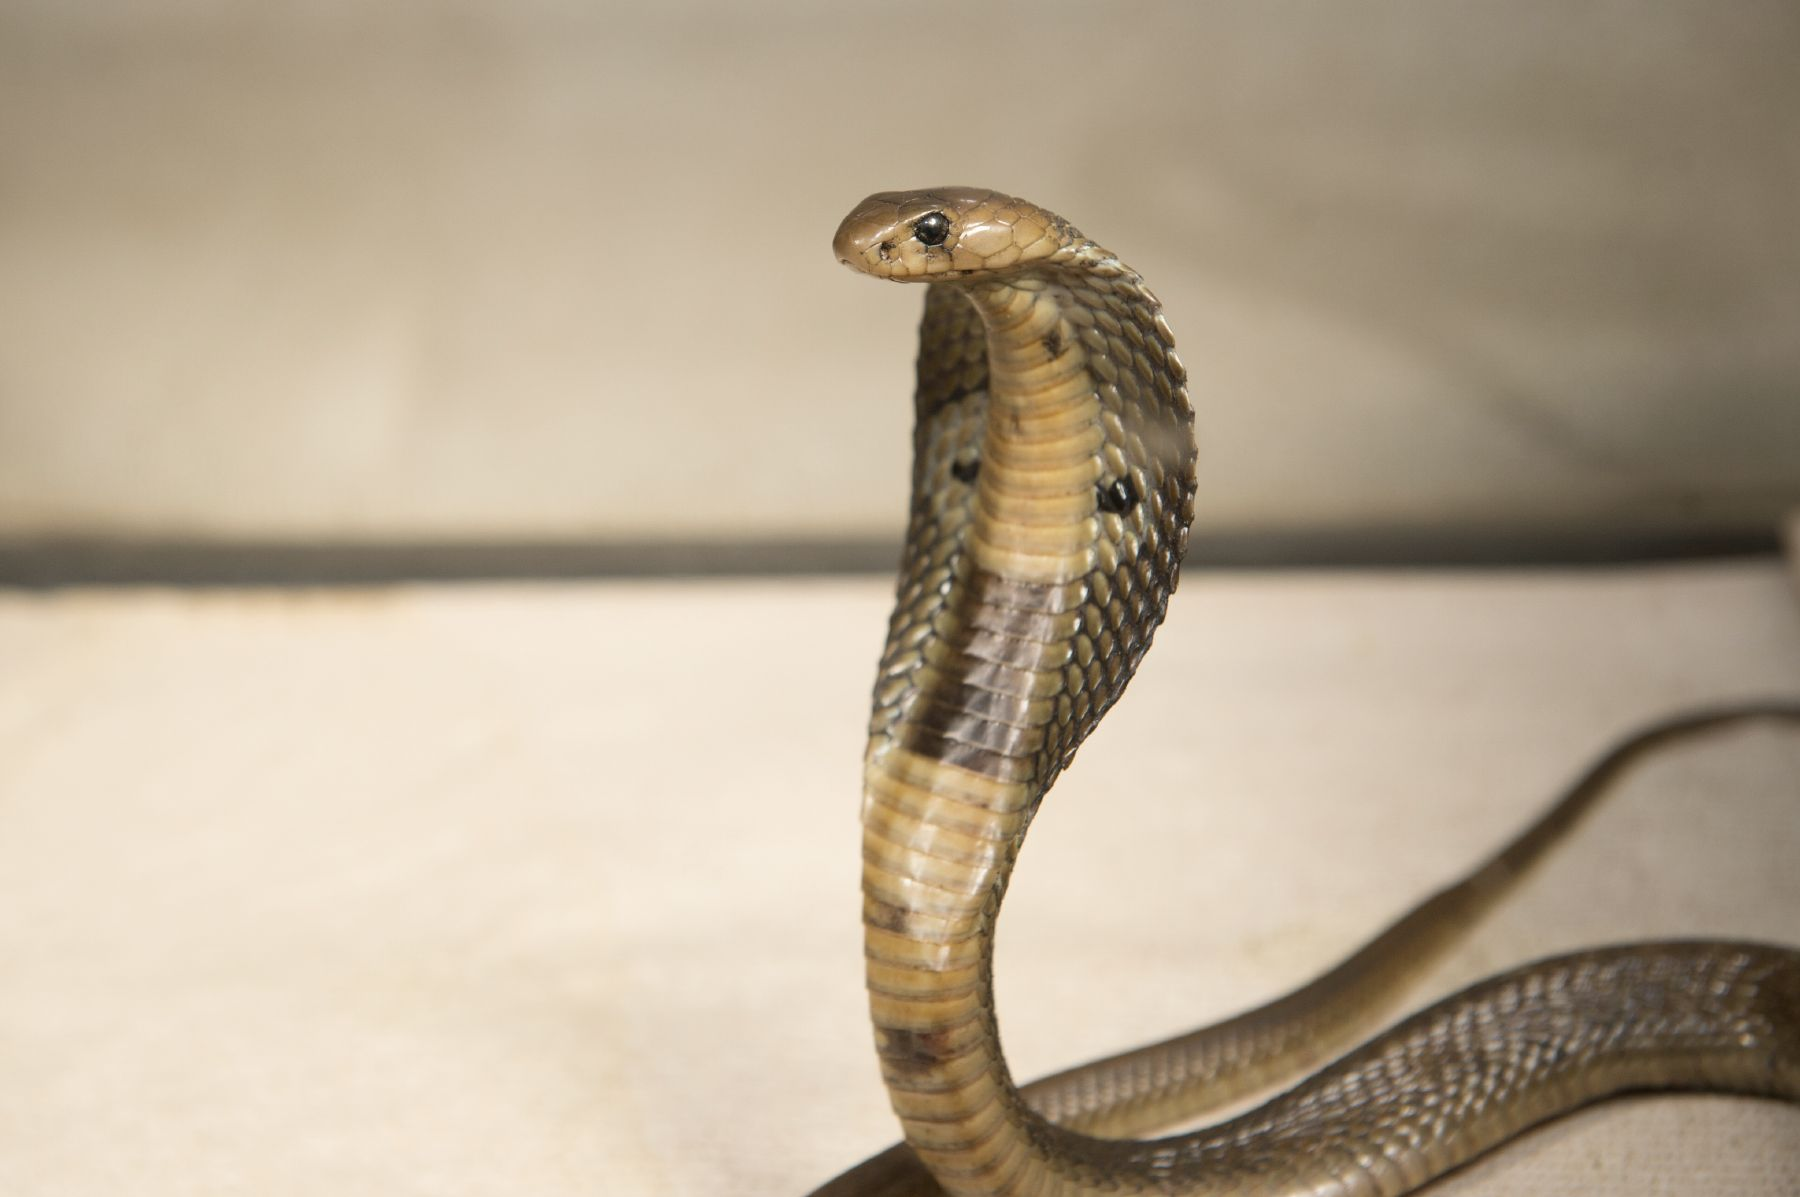 Venomous Cobra Recovering After Hitching A Ride On Container Ship To